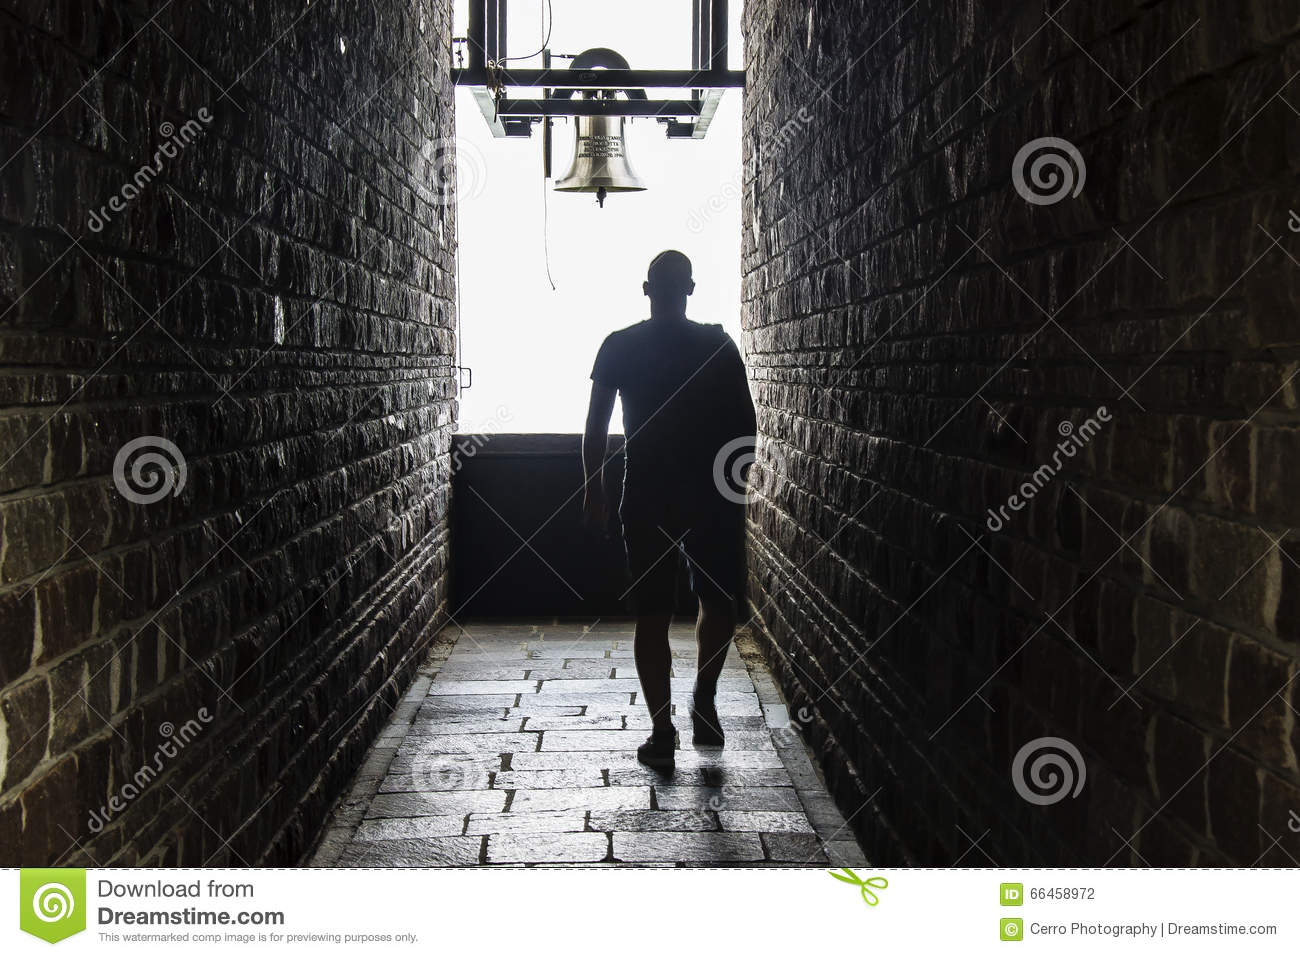 A men walks into a dark tunnel, but a light shows at the end